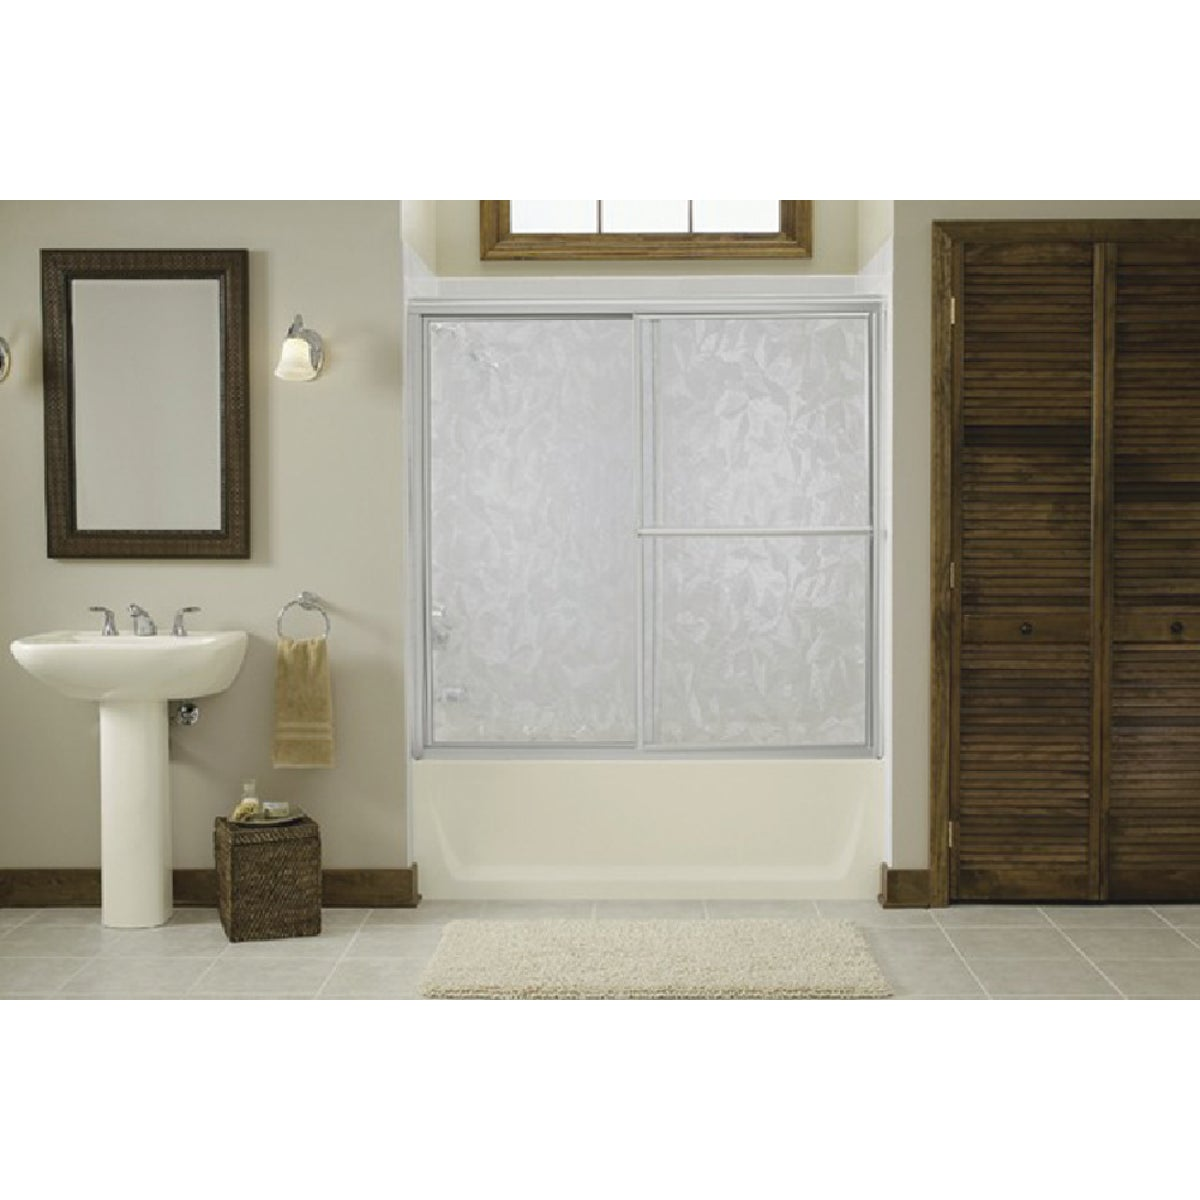 51-1/4-56-1/4 SLV TUB DR - 5930-56S by Sterling Doors